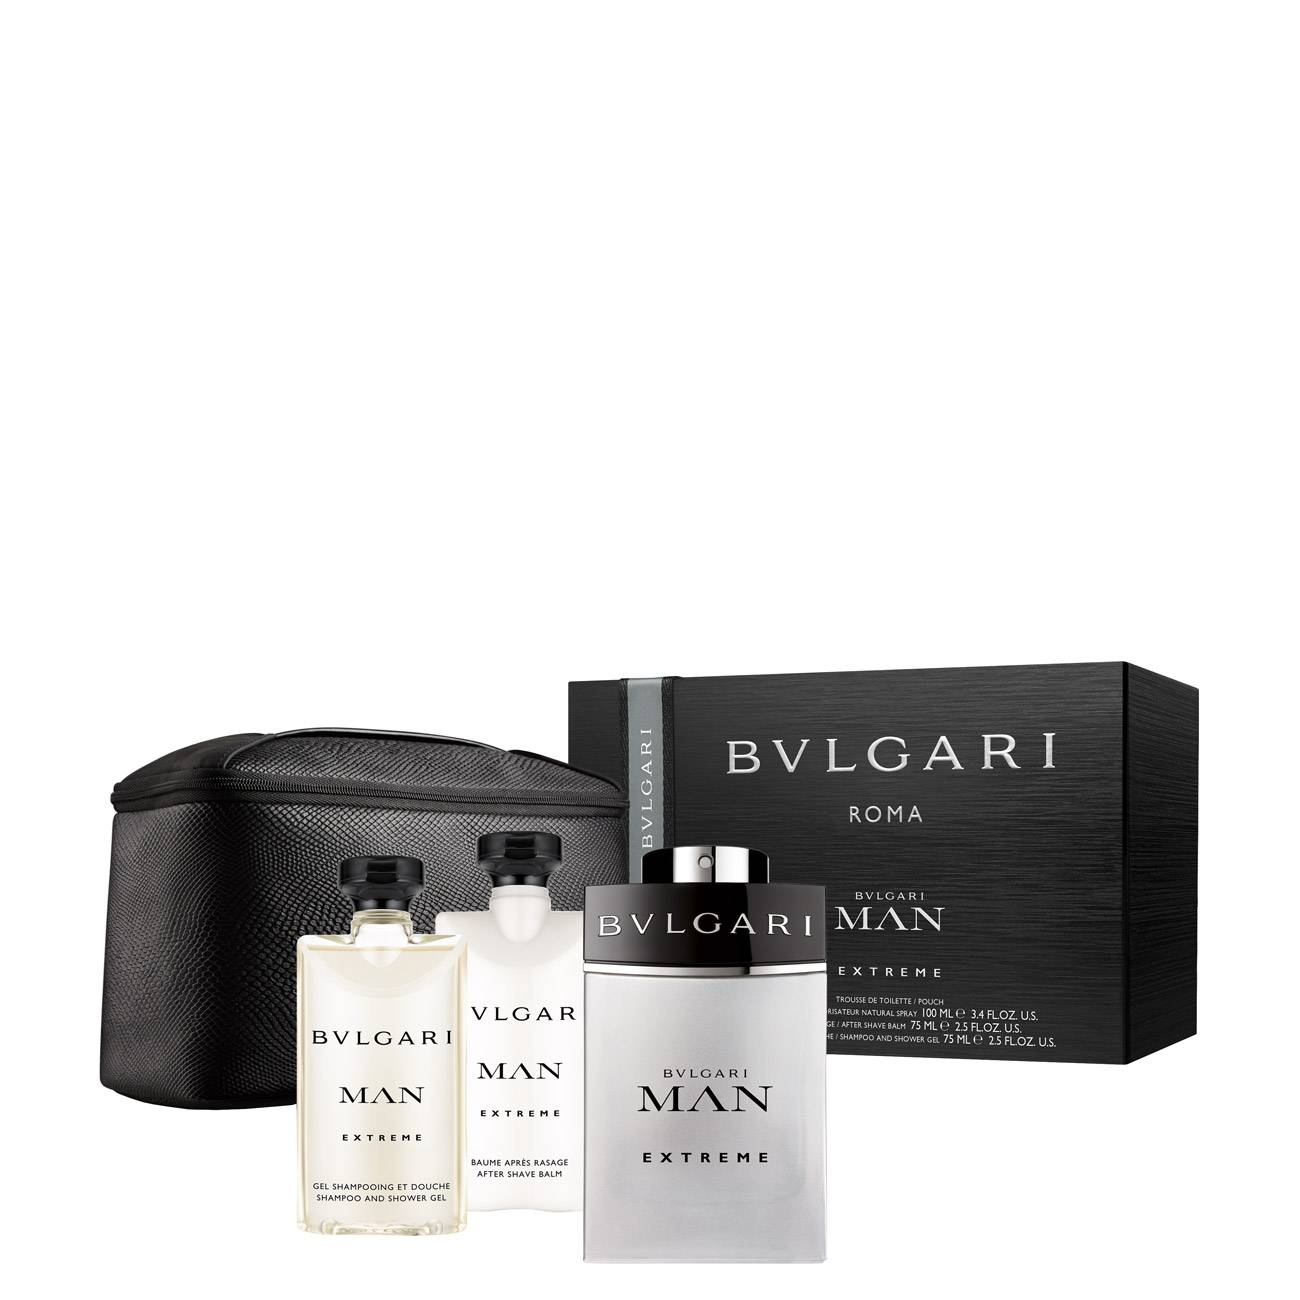 Bvlgari Man Extreme Set 250 Ml 250ml